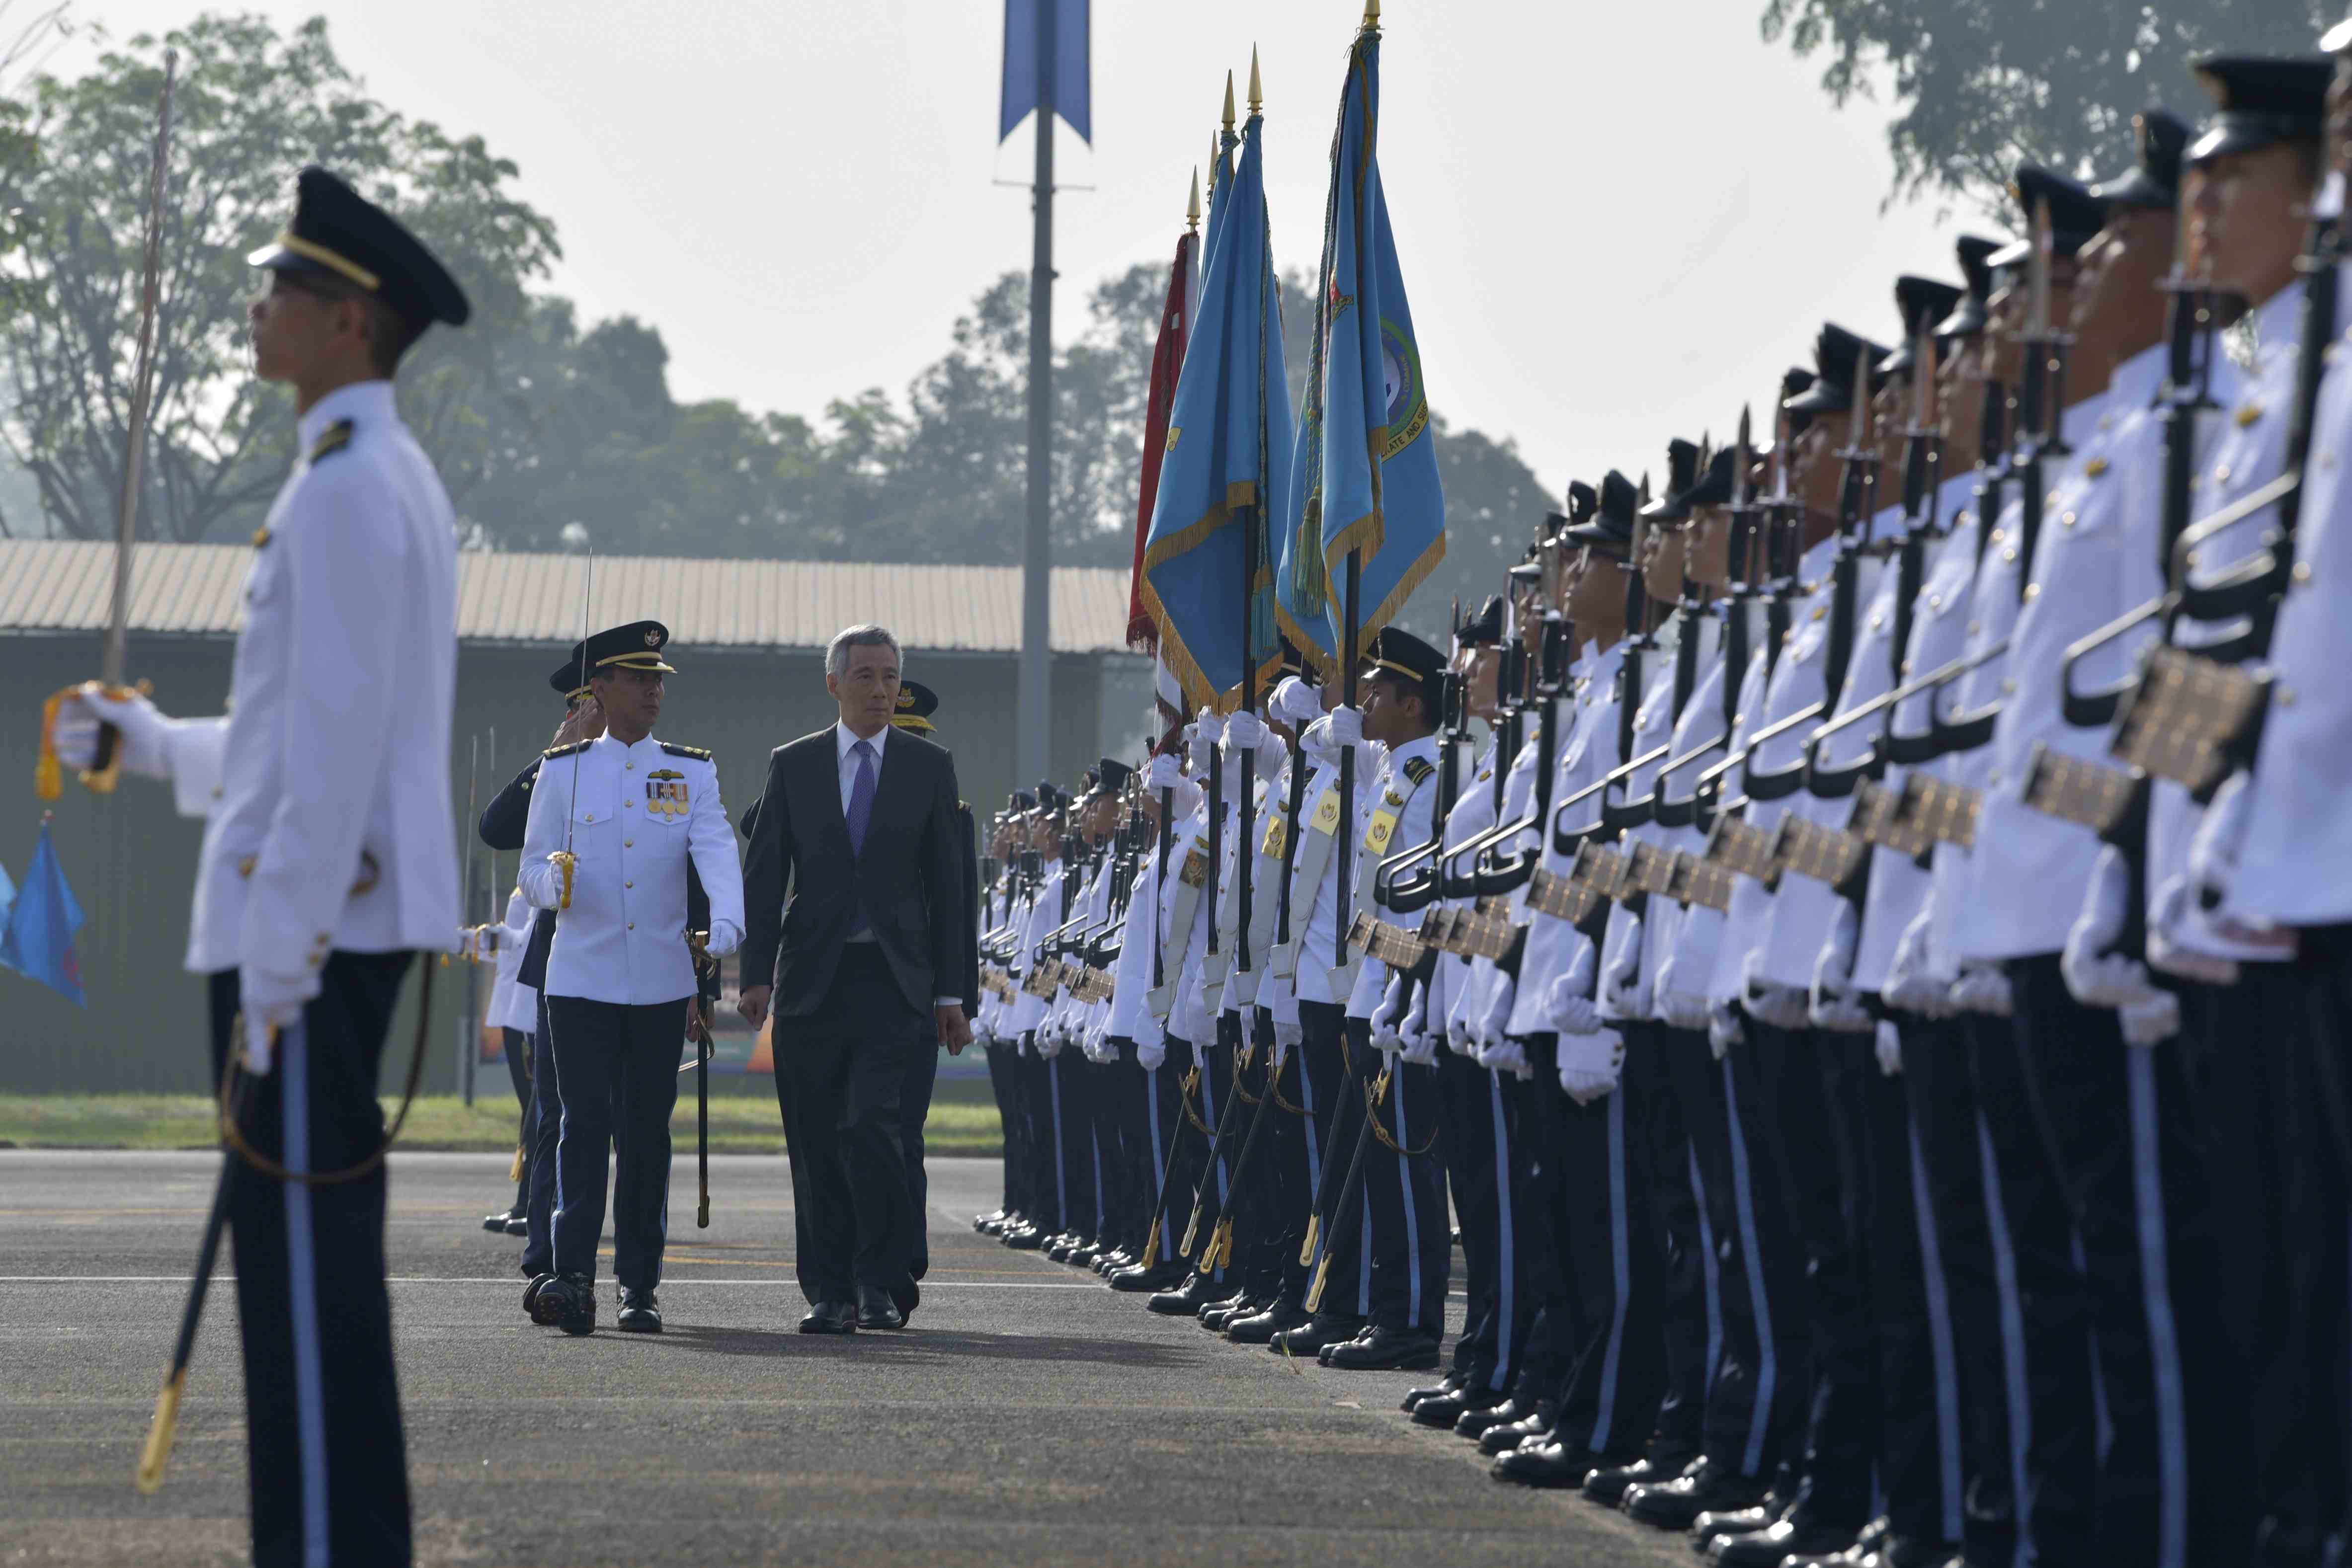 Prime Minister (PM) Lee Hsien Loong reviewing the Guard of Honour at the RSAF50 Parade this morning at Tengah Air Base.